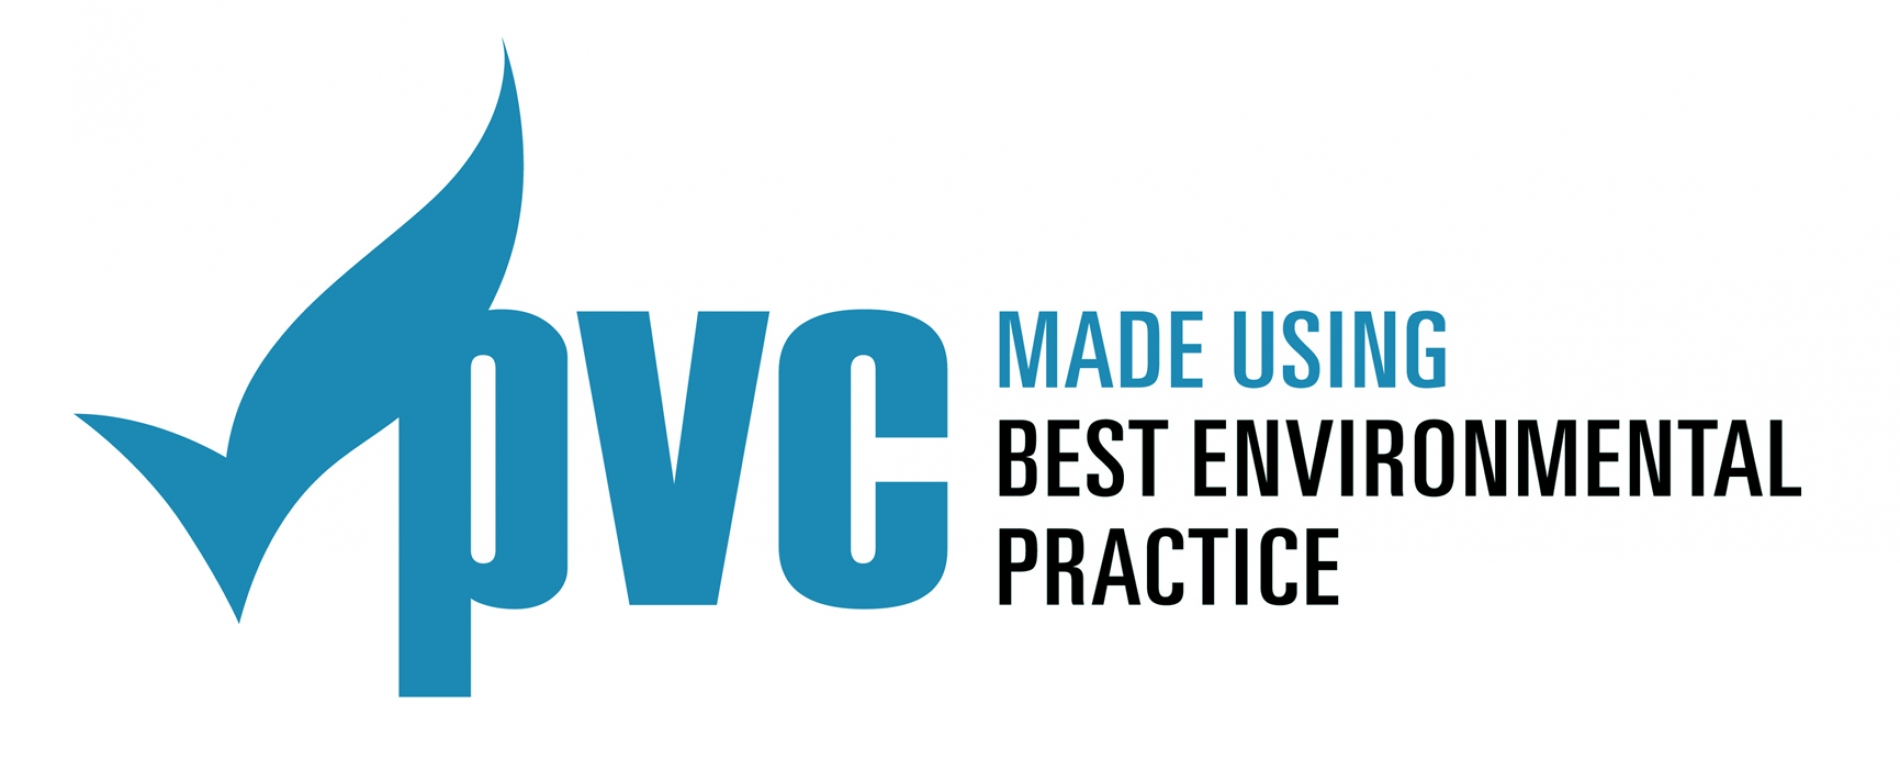 Best Practice PVC - Have your say